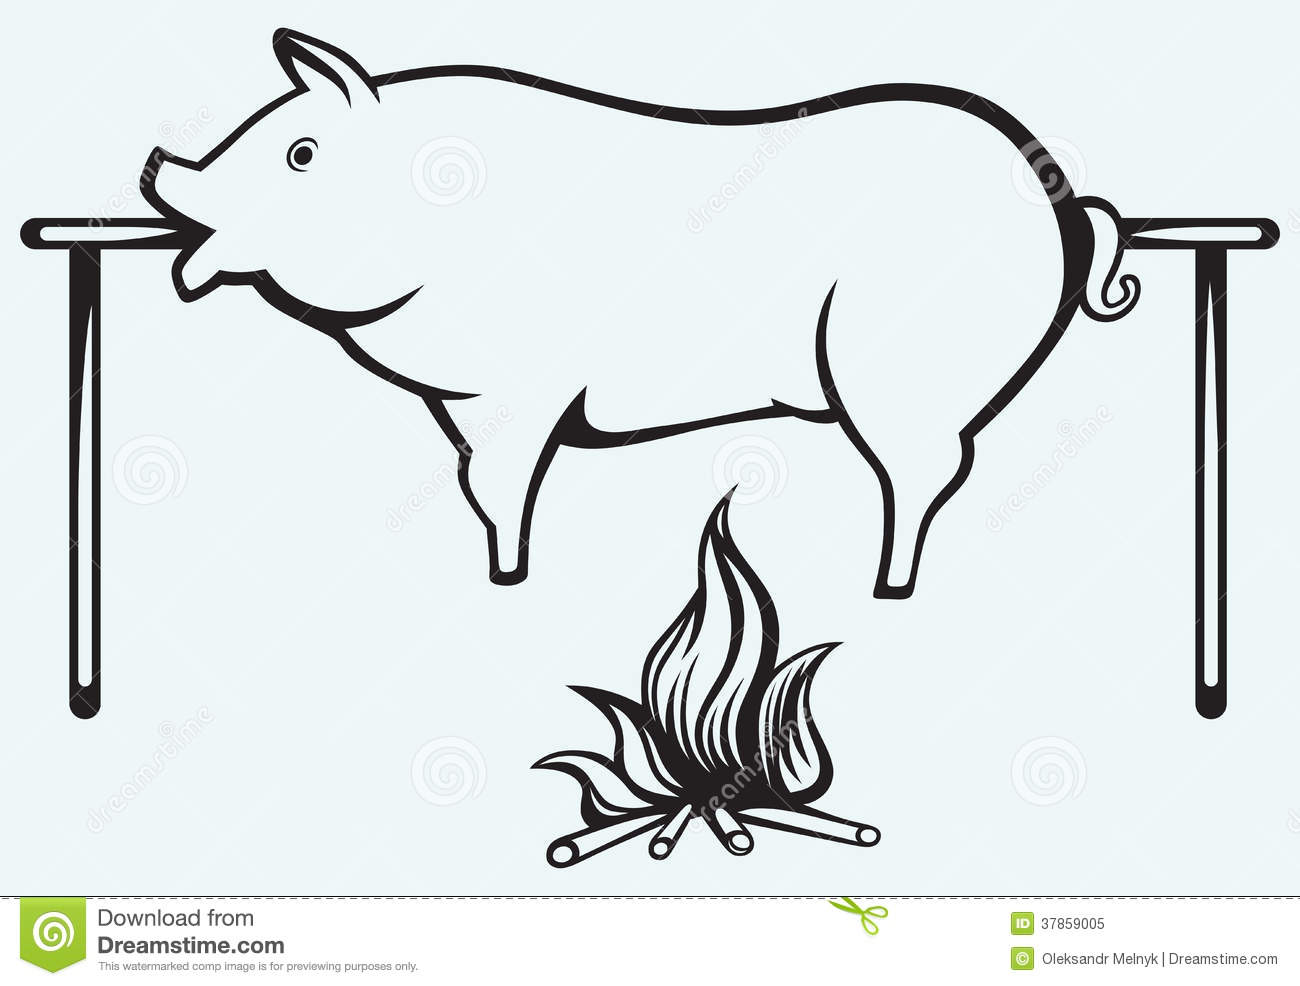 Roasted Pig Stock Vector Illustration Of Animal